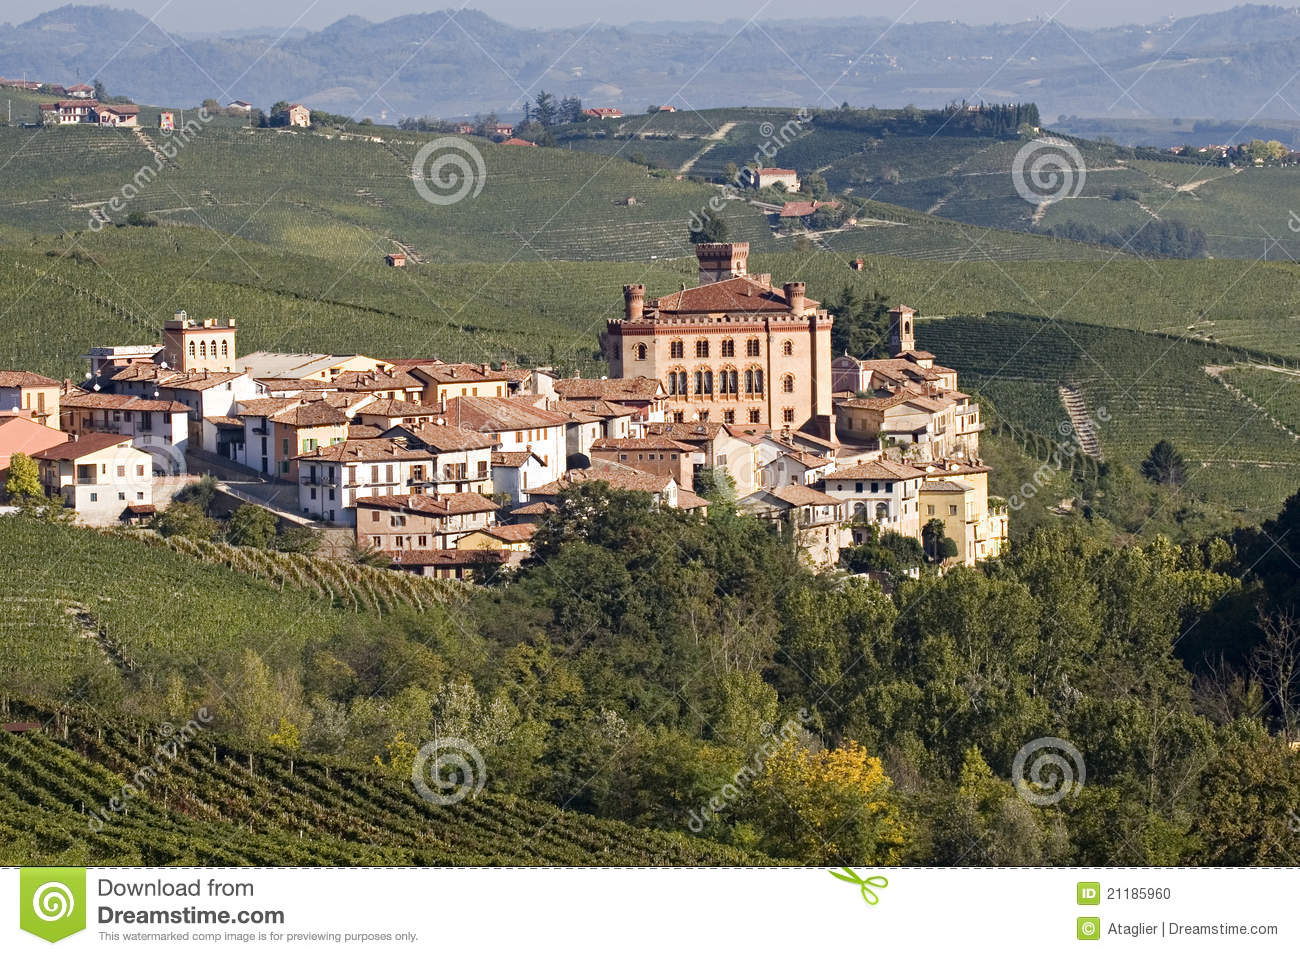 Views of the Castle of Barolo